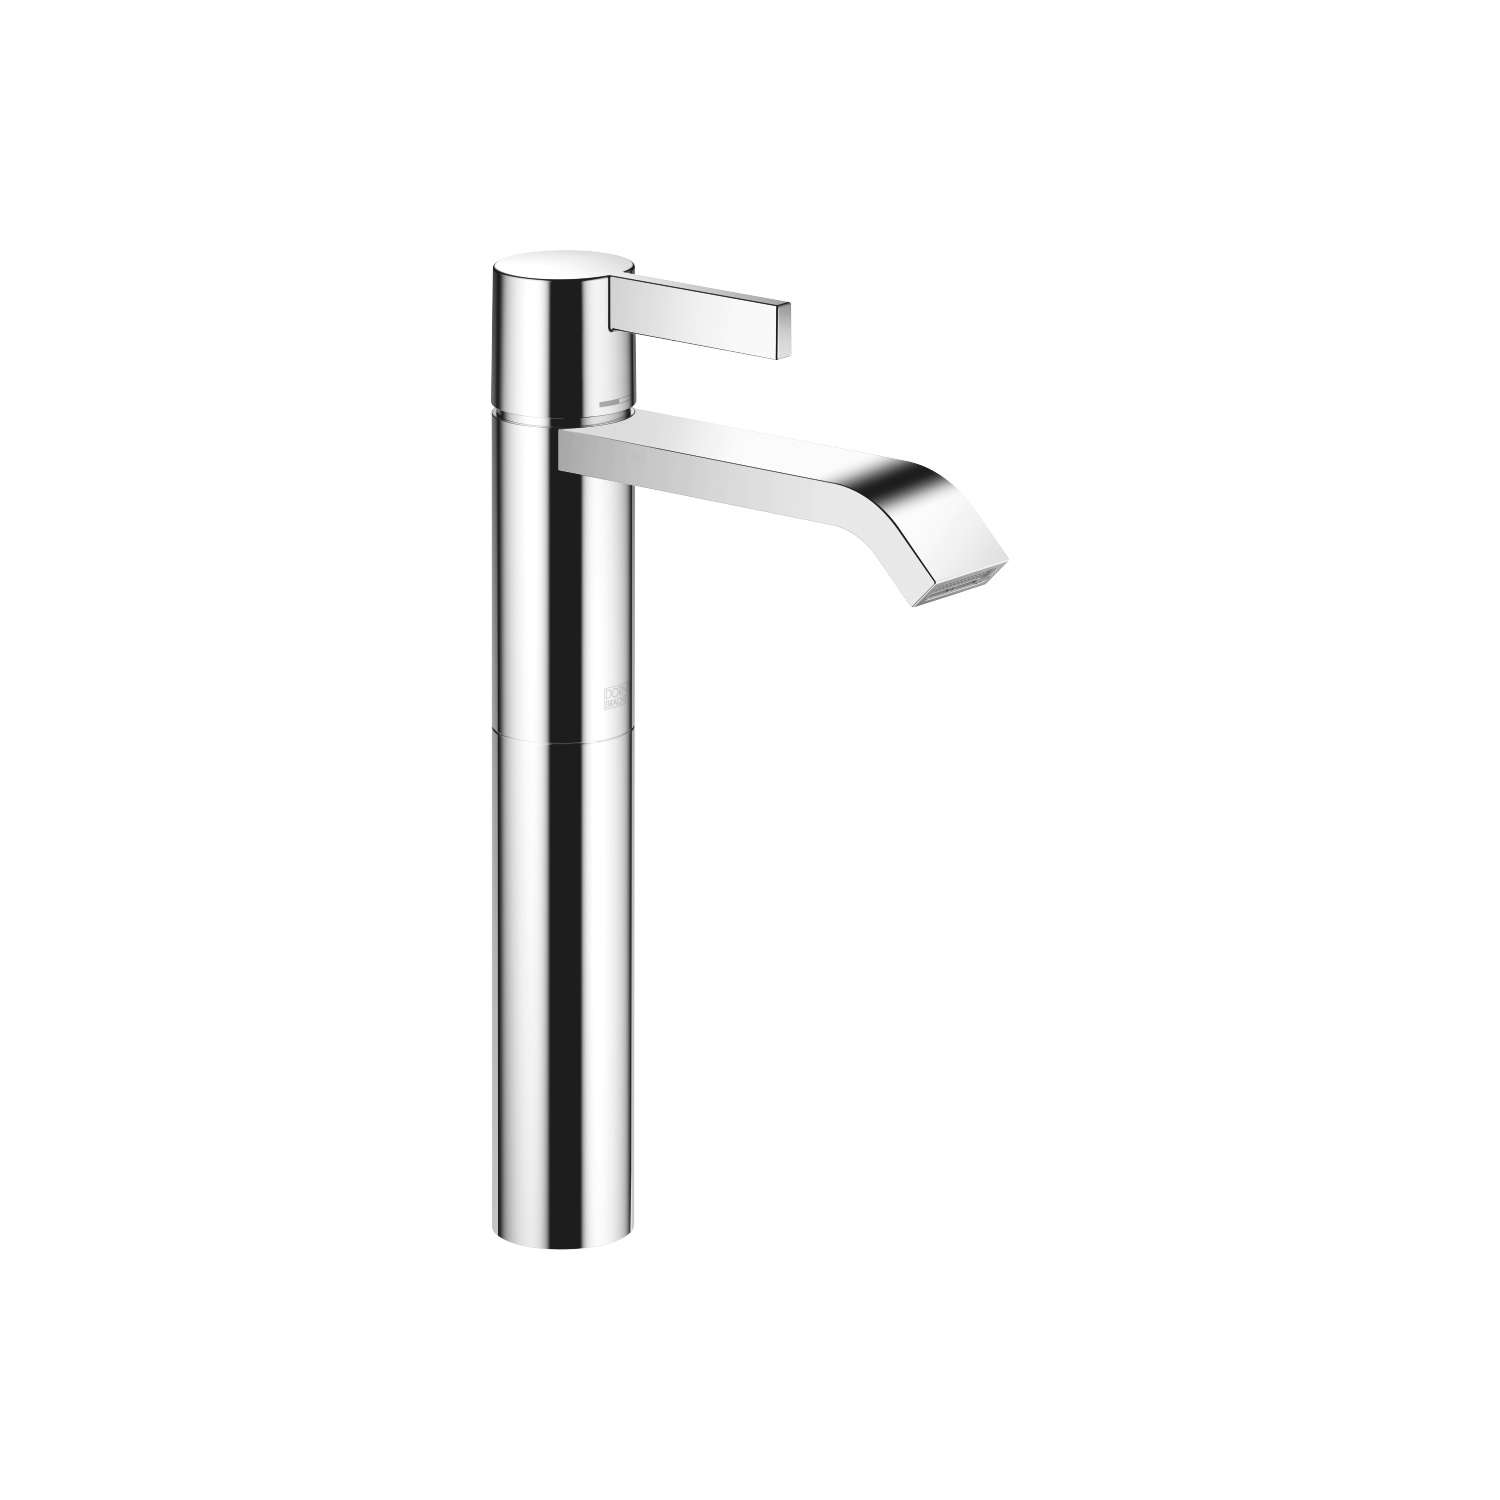 Single-lever basin mixer with raised base without pop-up waste - polished chrome - 33 537 670-00